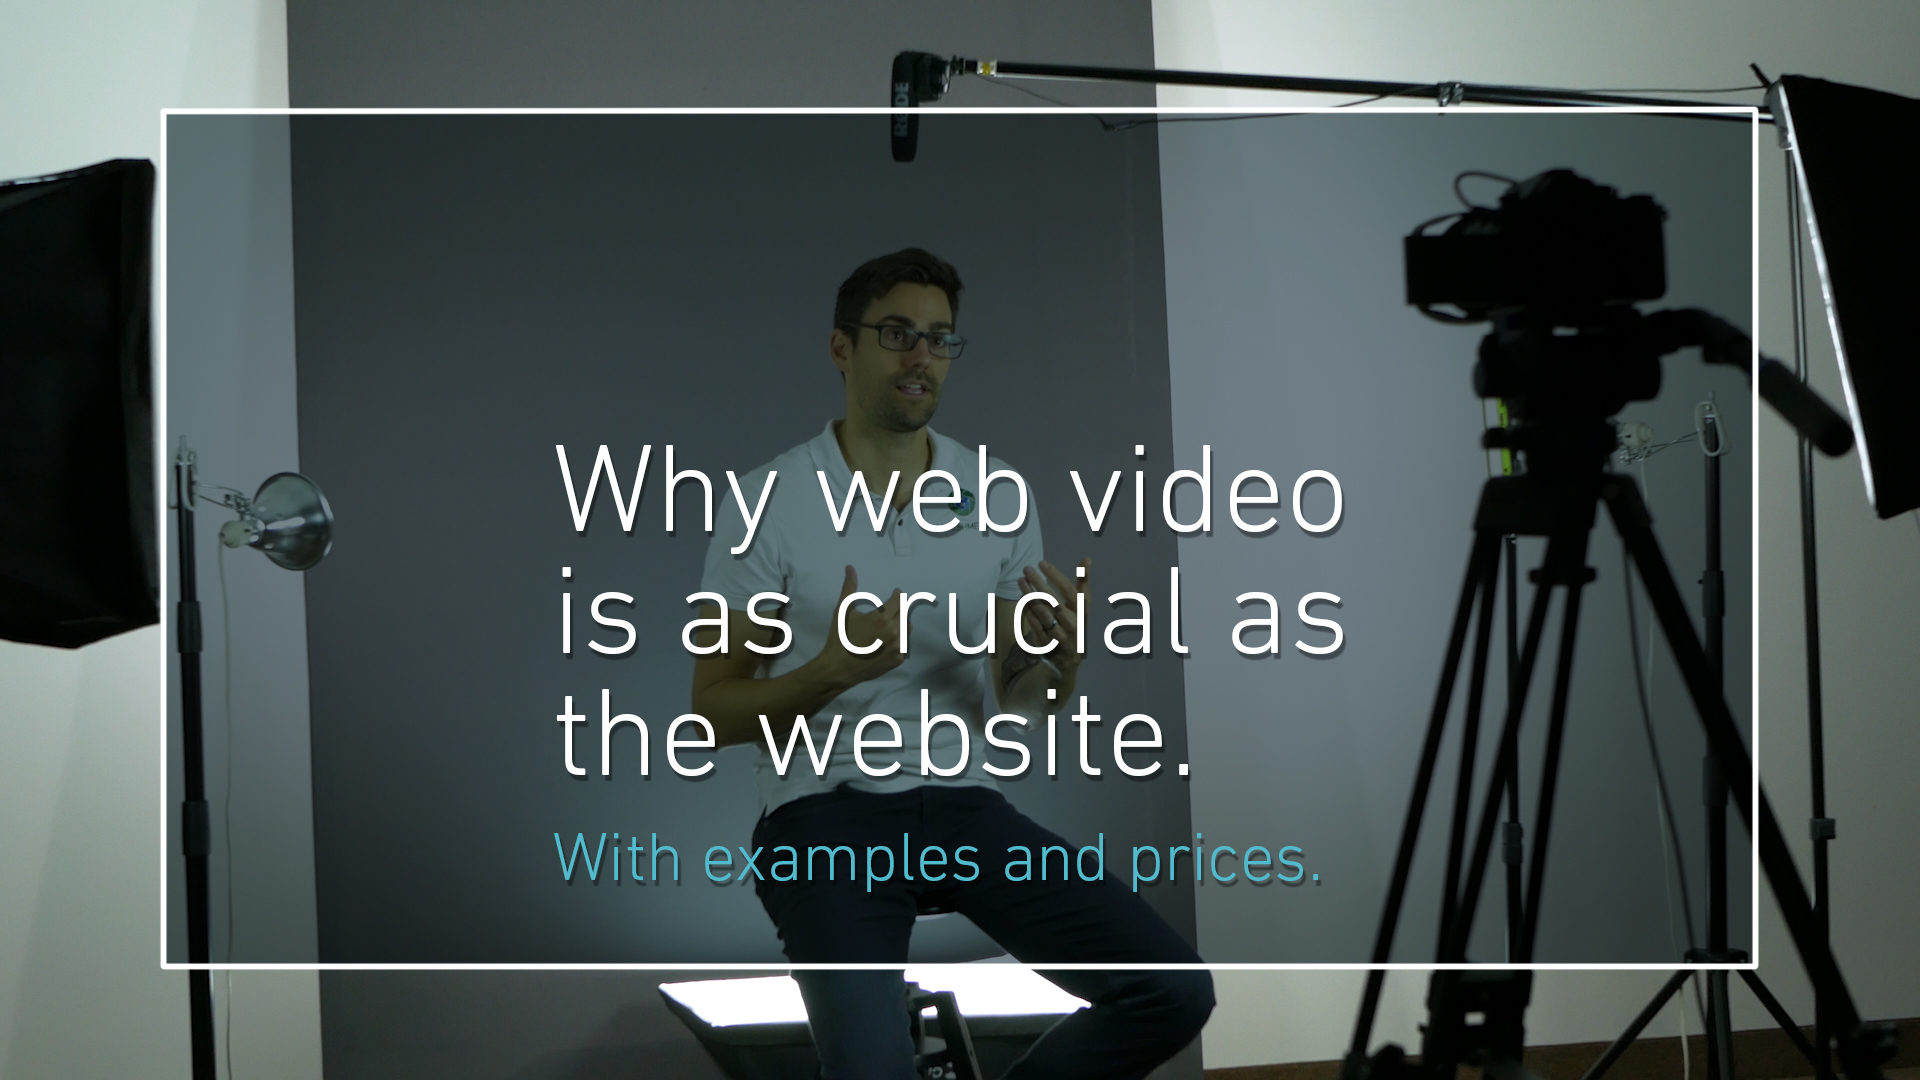 Web Video: As Crucial As The Website